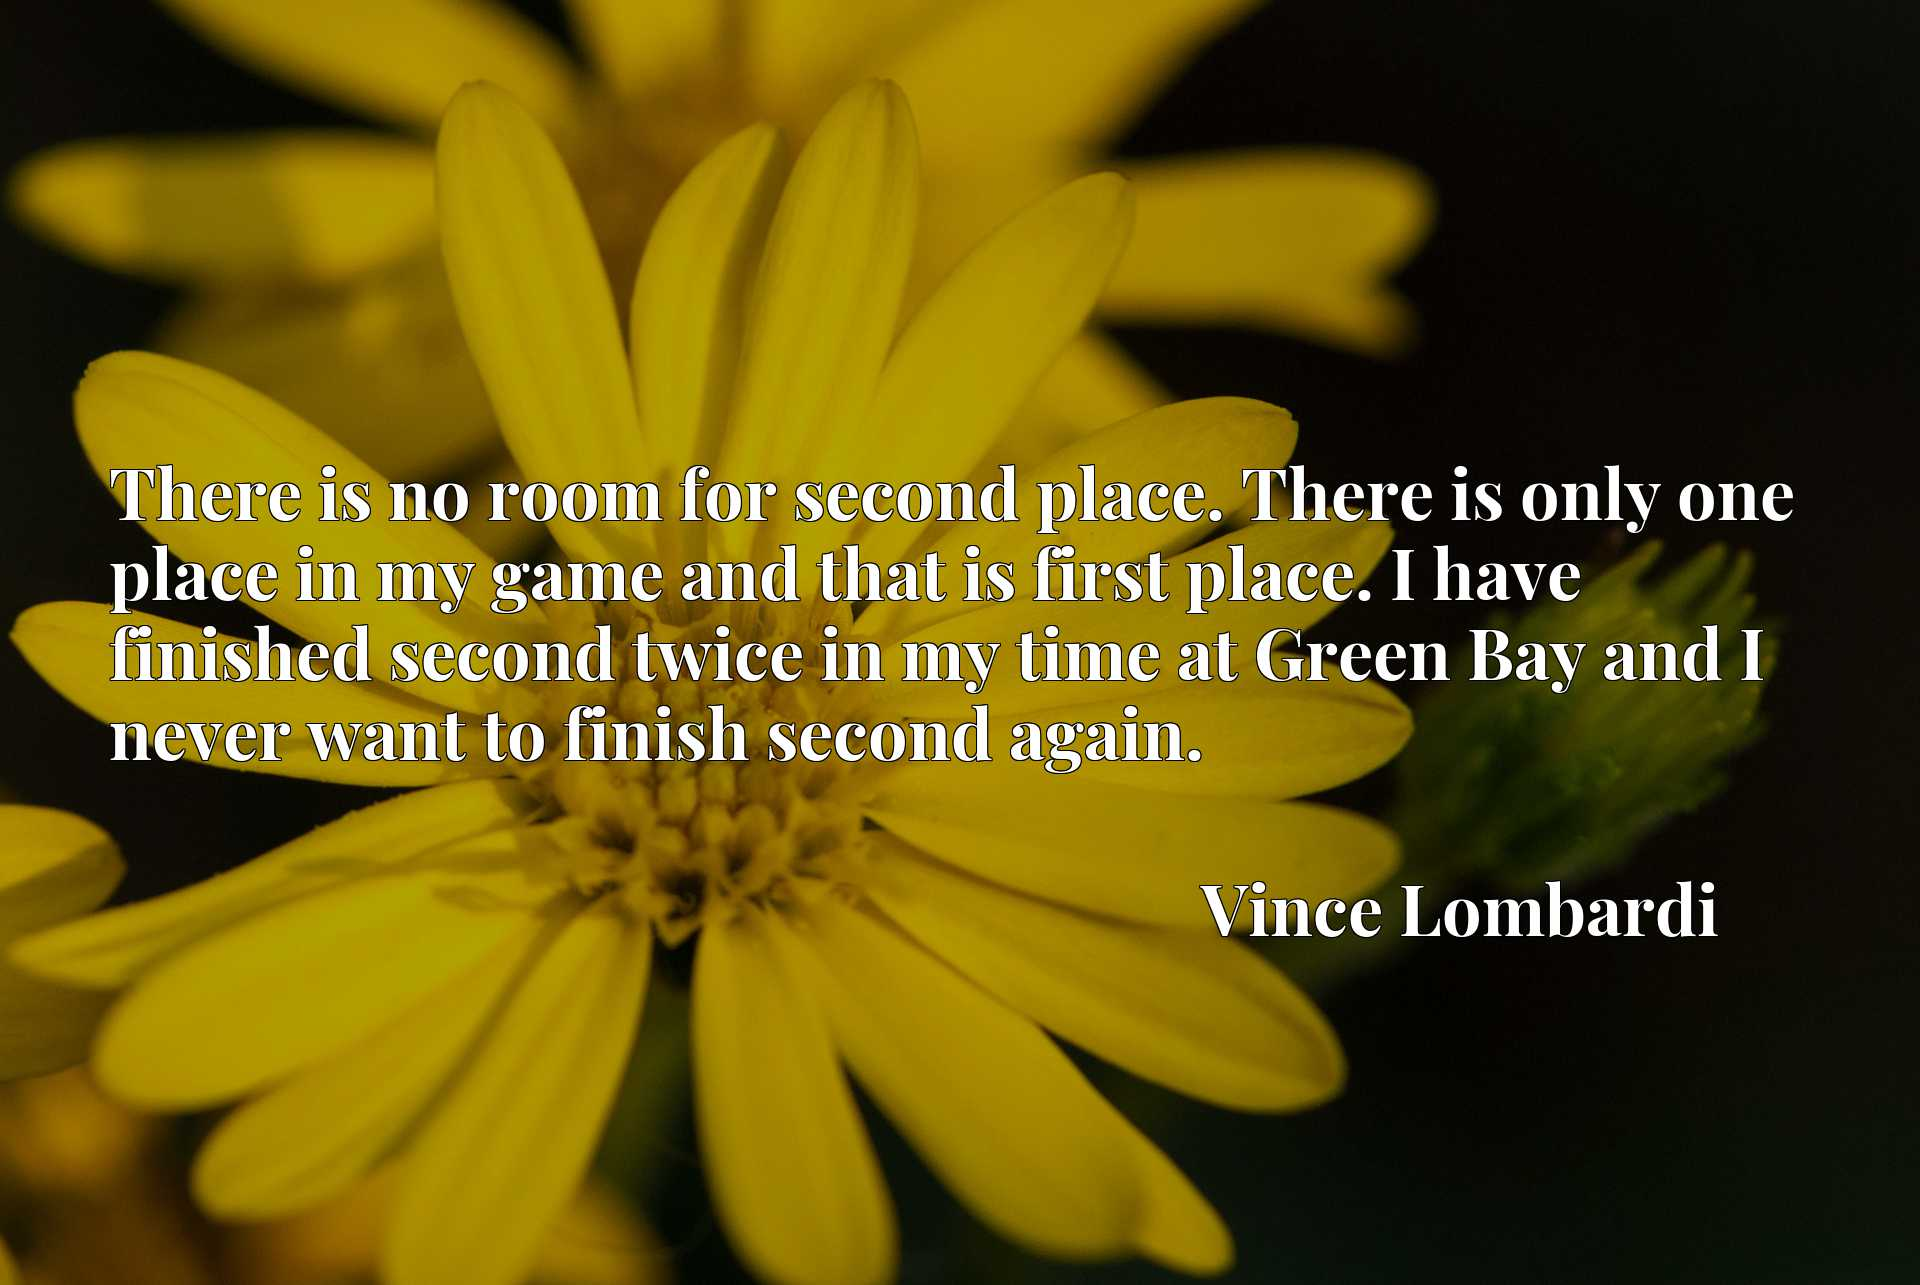 There is no room for second place. There is only one place in my game and that is first place. I have finished second twice in my time at Green Bay and I never want to finish second again.